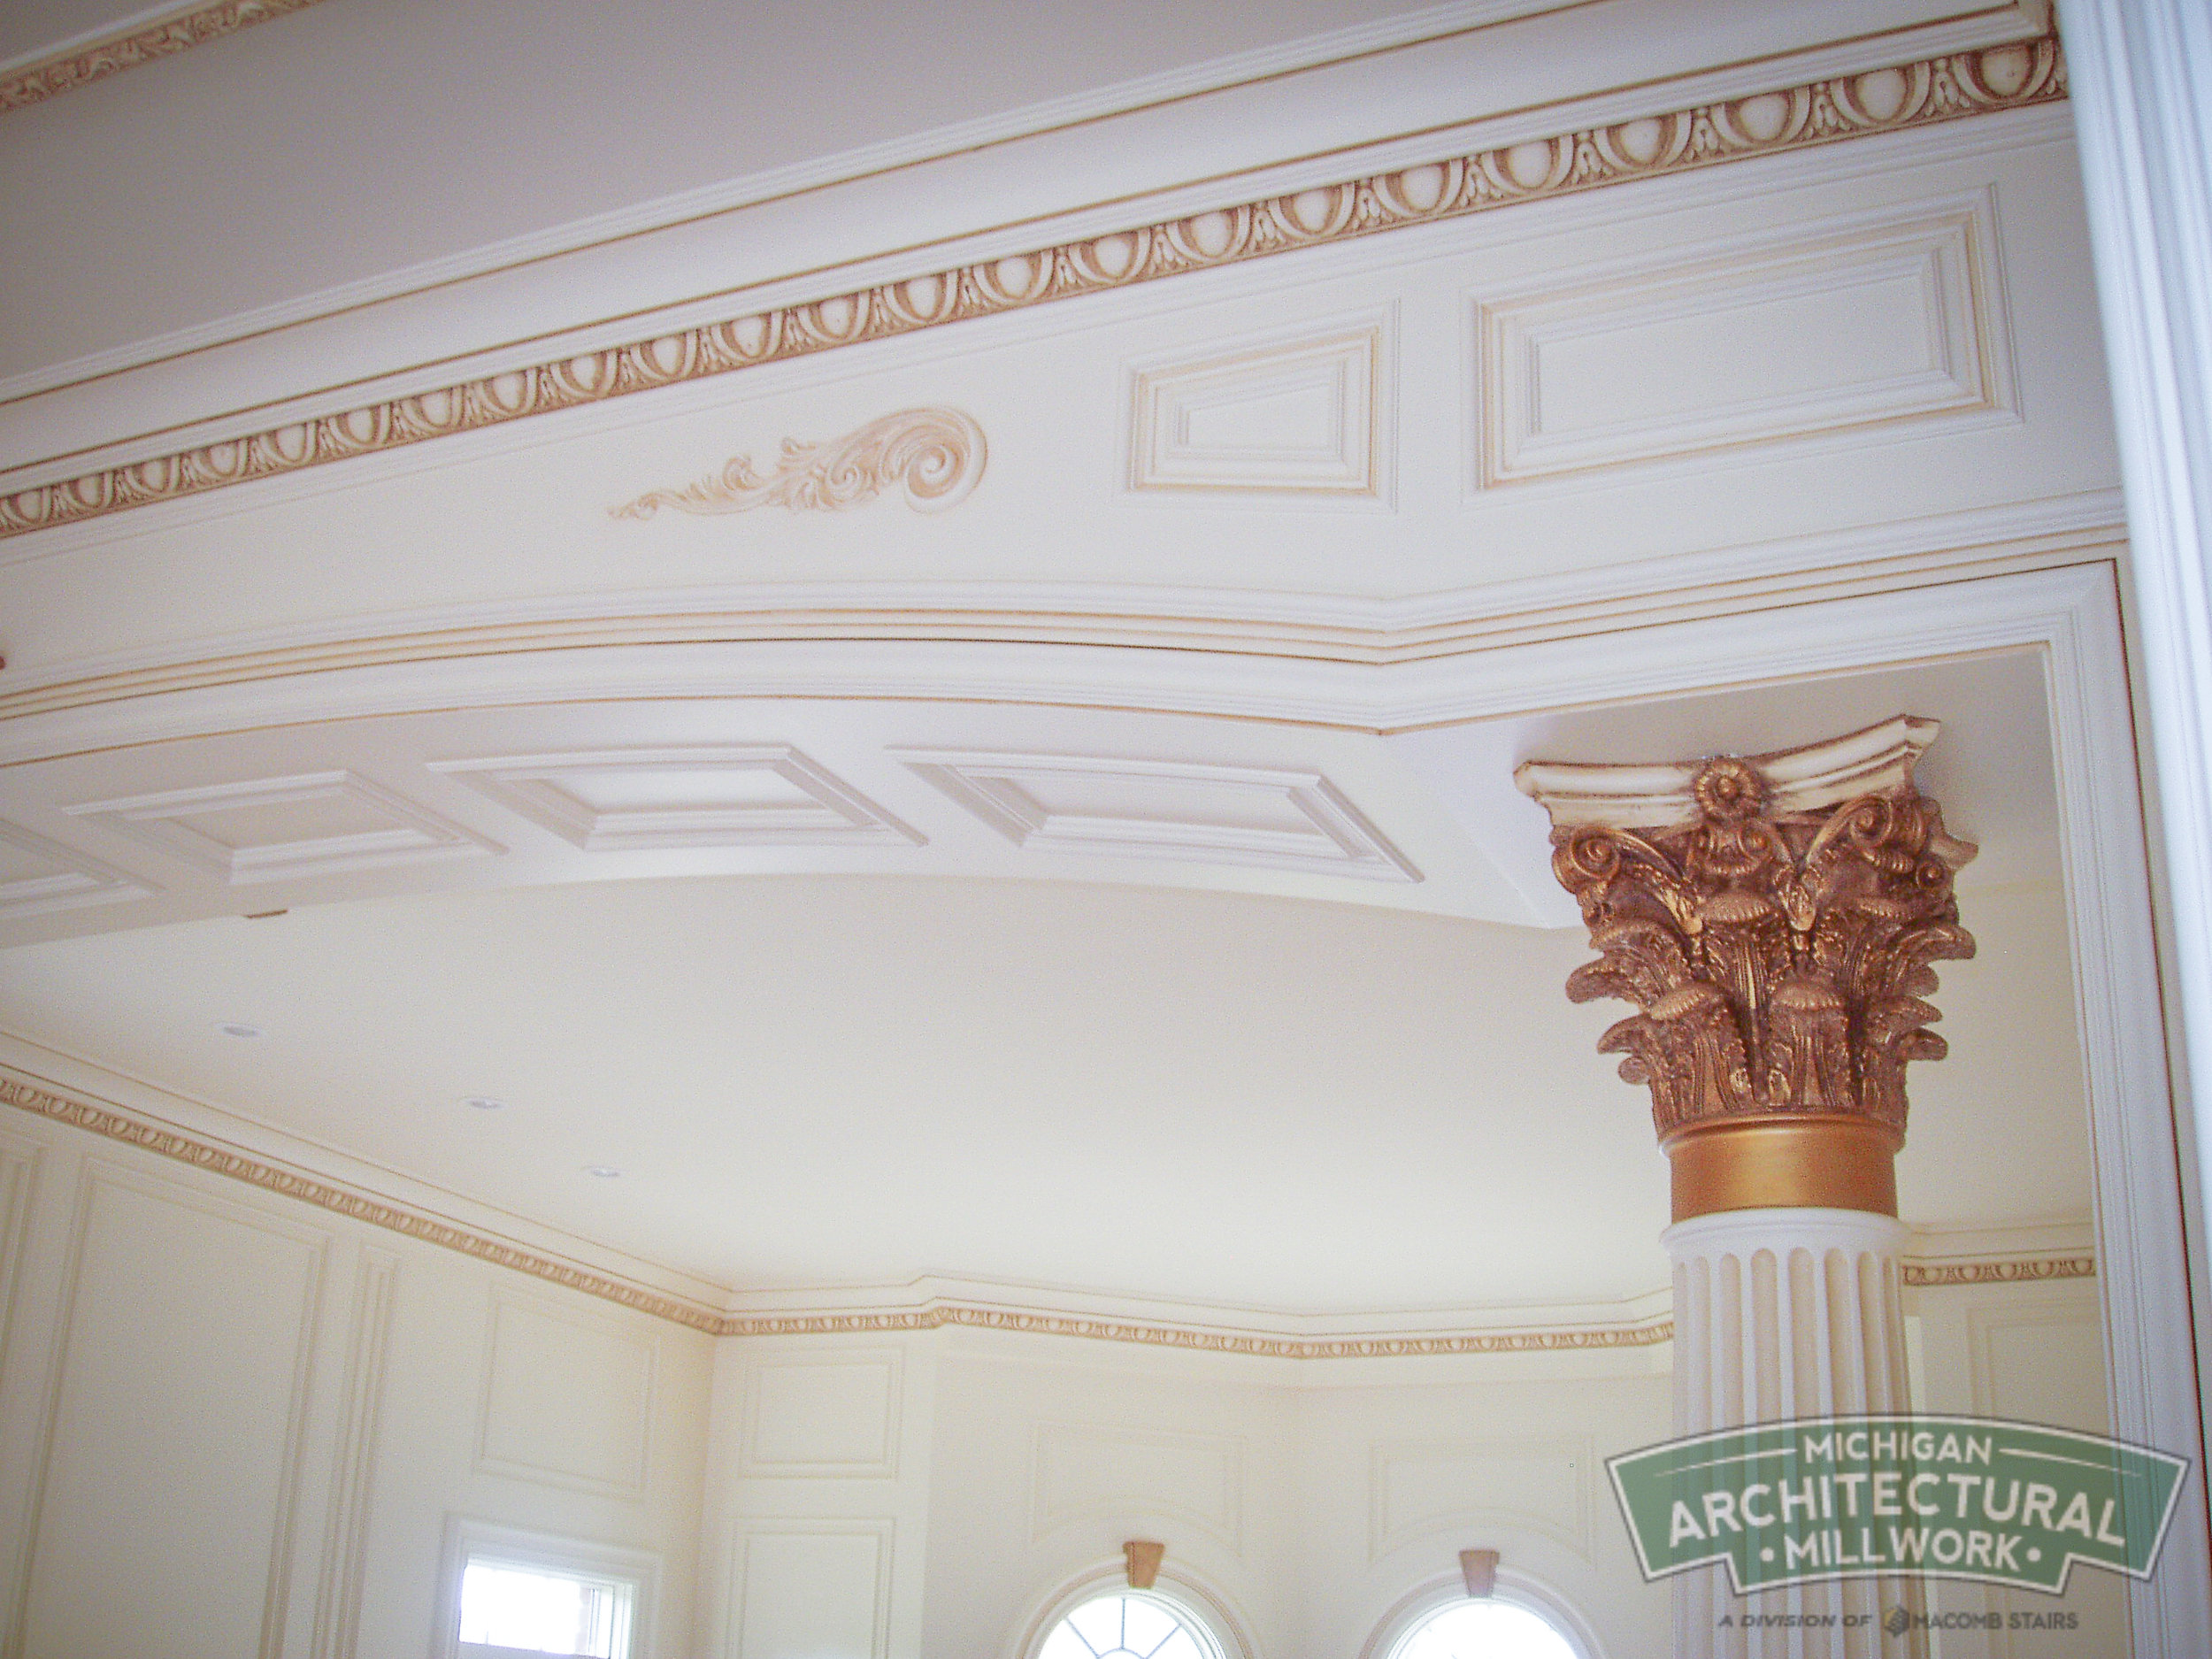 Michigan Architectural Millwork- Moulding and Millwork Photo-197.jpg